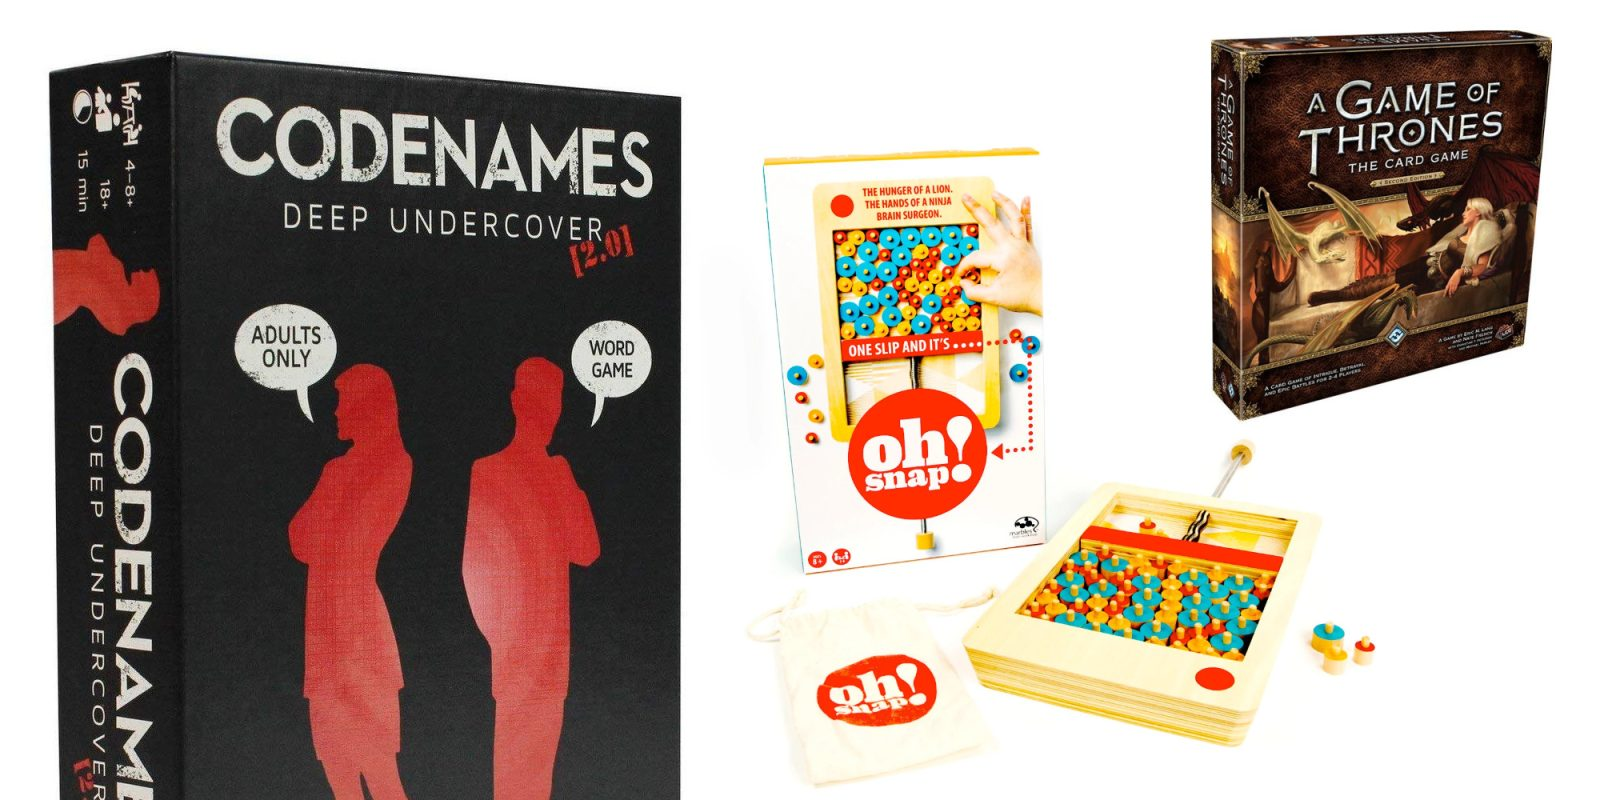 Boardcard Game Deals From 650 Codenames Sorry Game Of Thrones